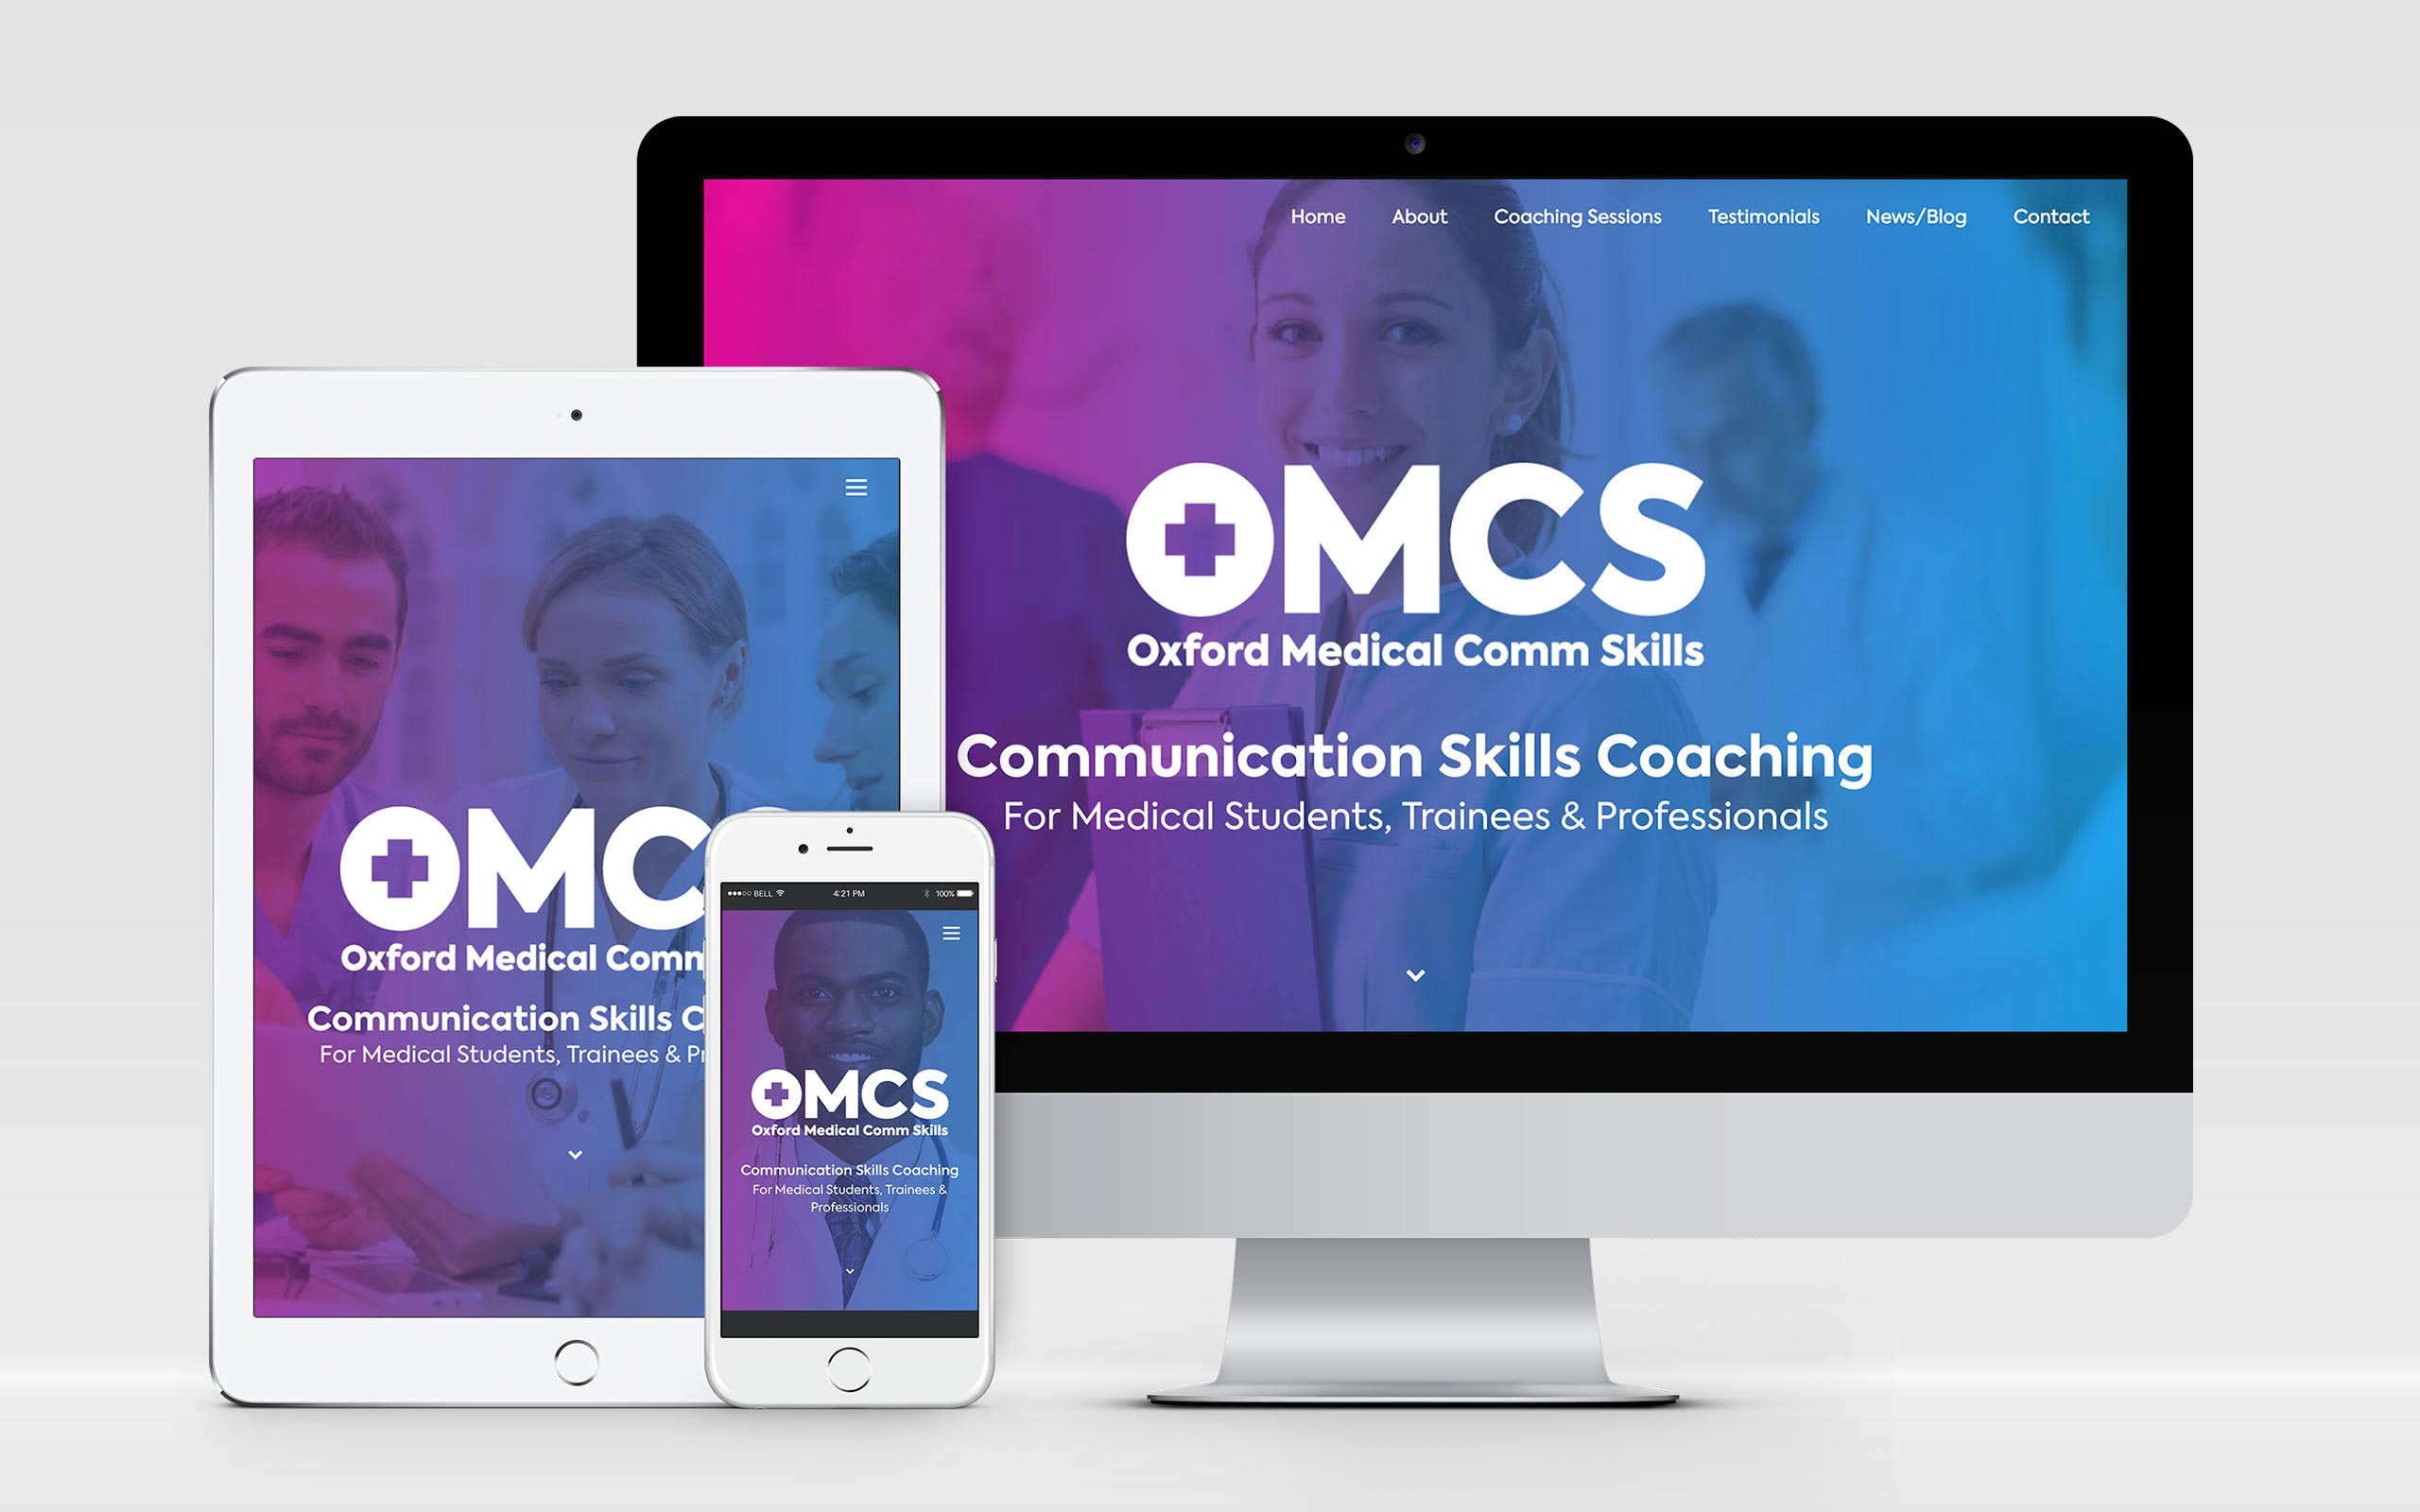 AW Design - website design & graphic design for OMCS